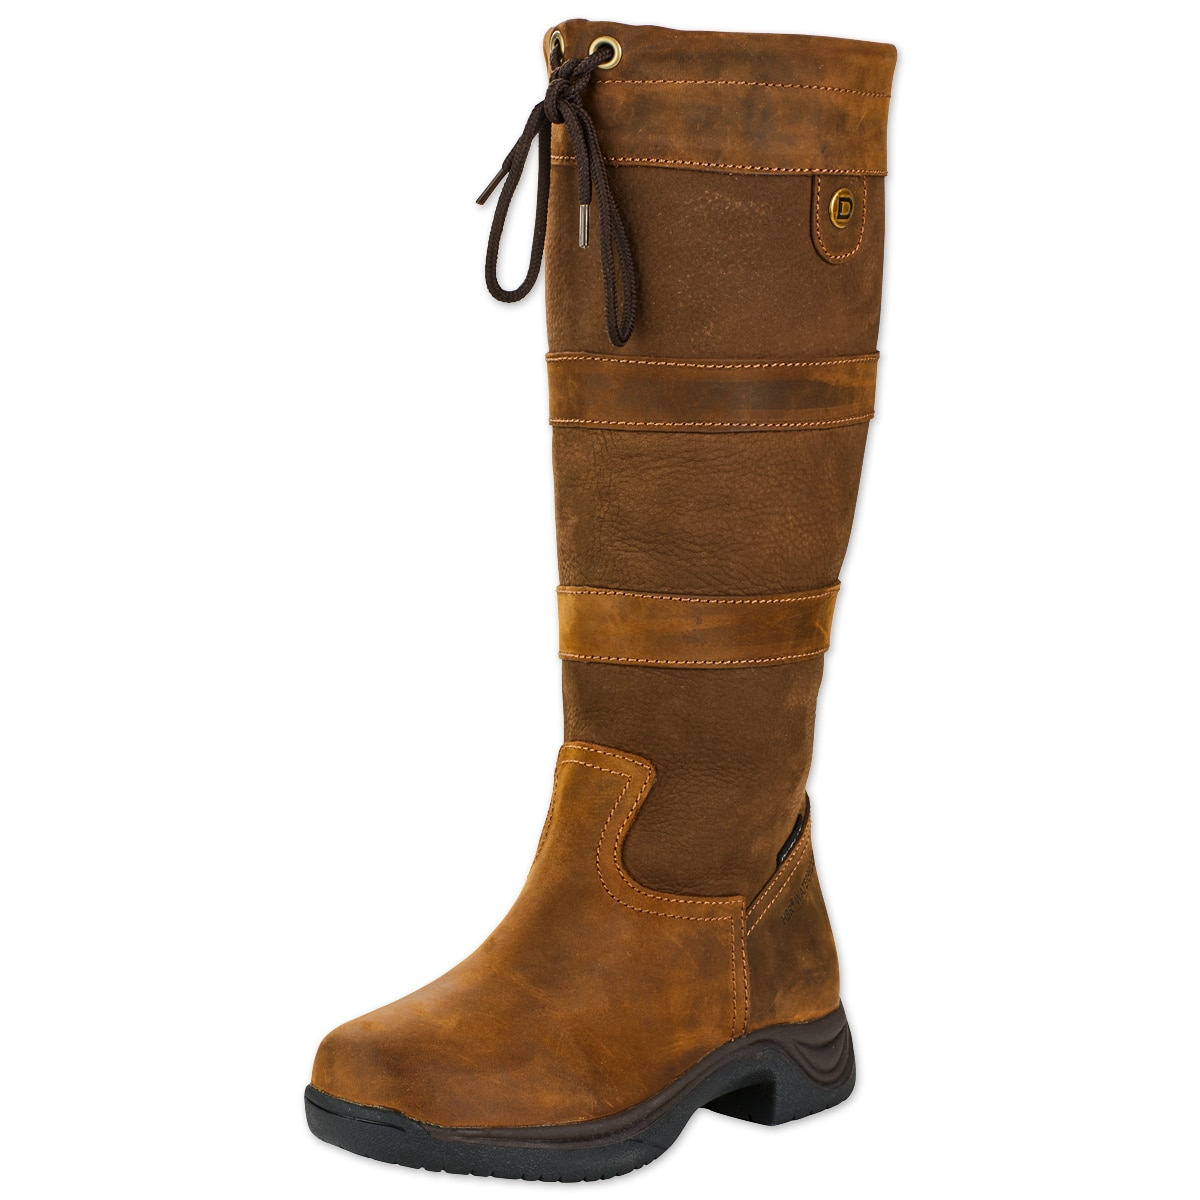 bc6668df50c Dublin Wide Calf River Boot III